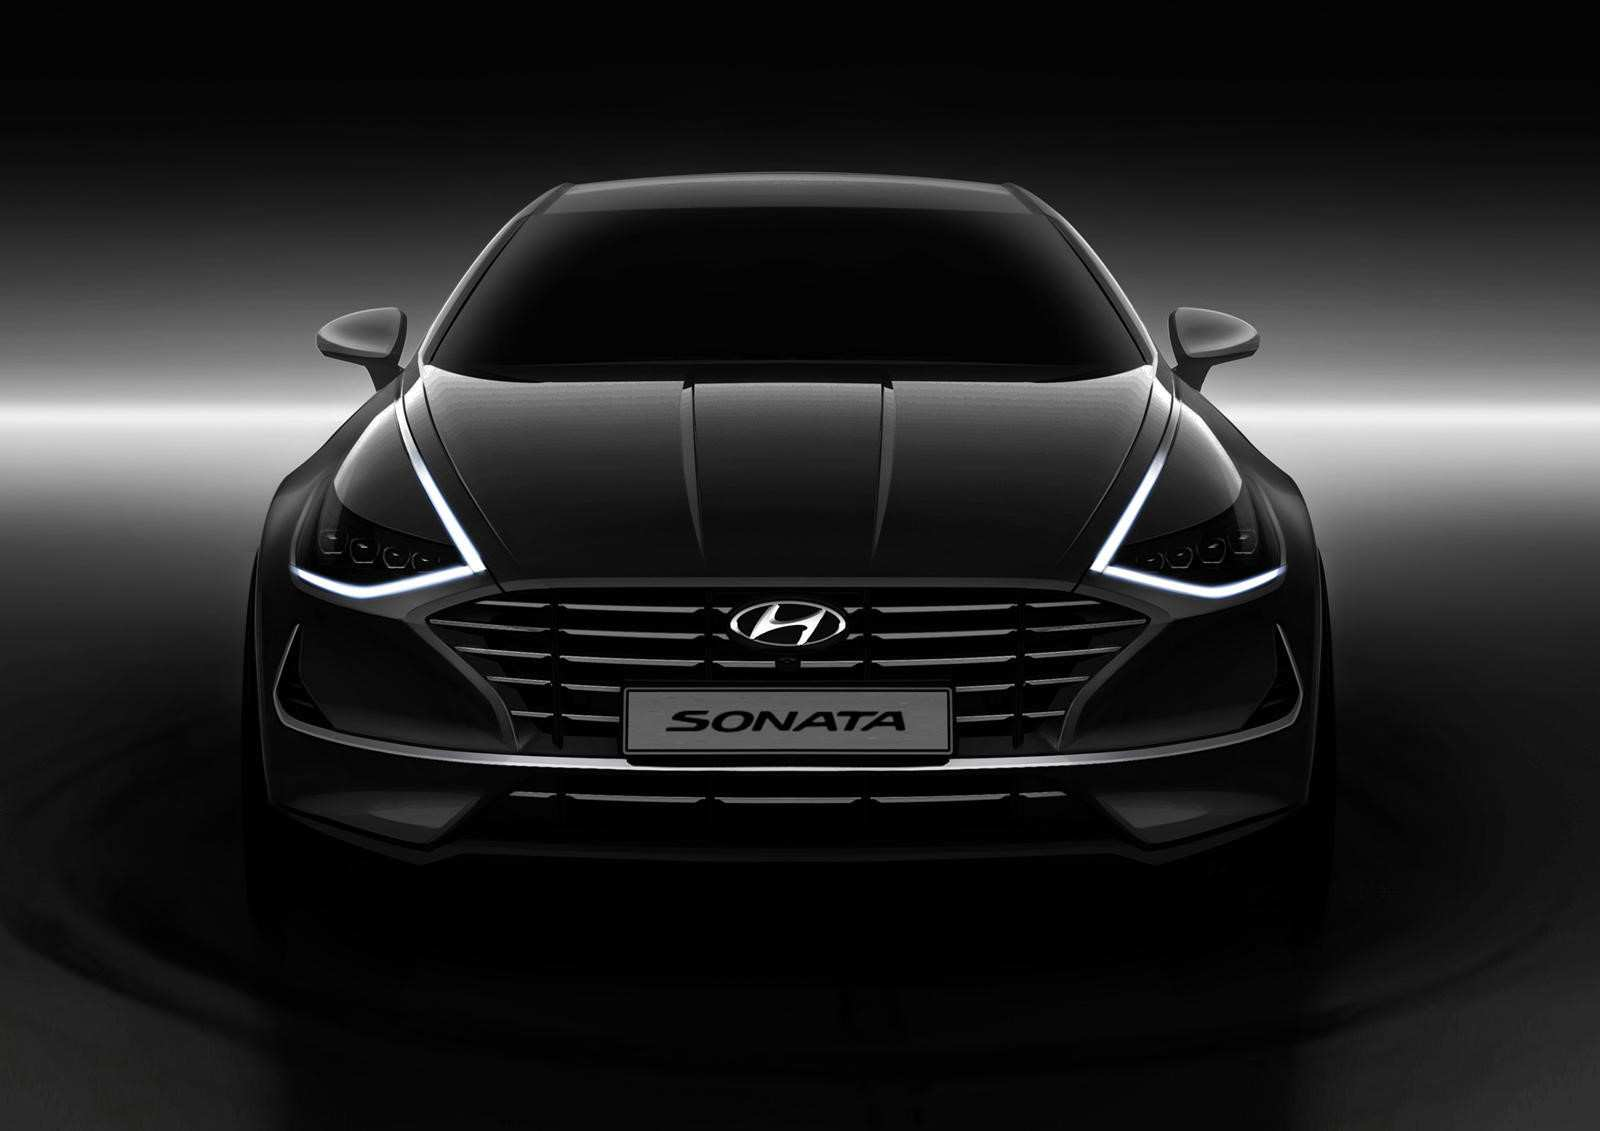 20 The Best Hyundai New Sonata 2020 Configurations